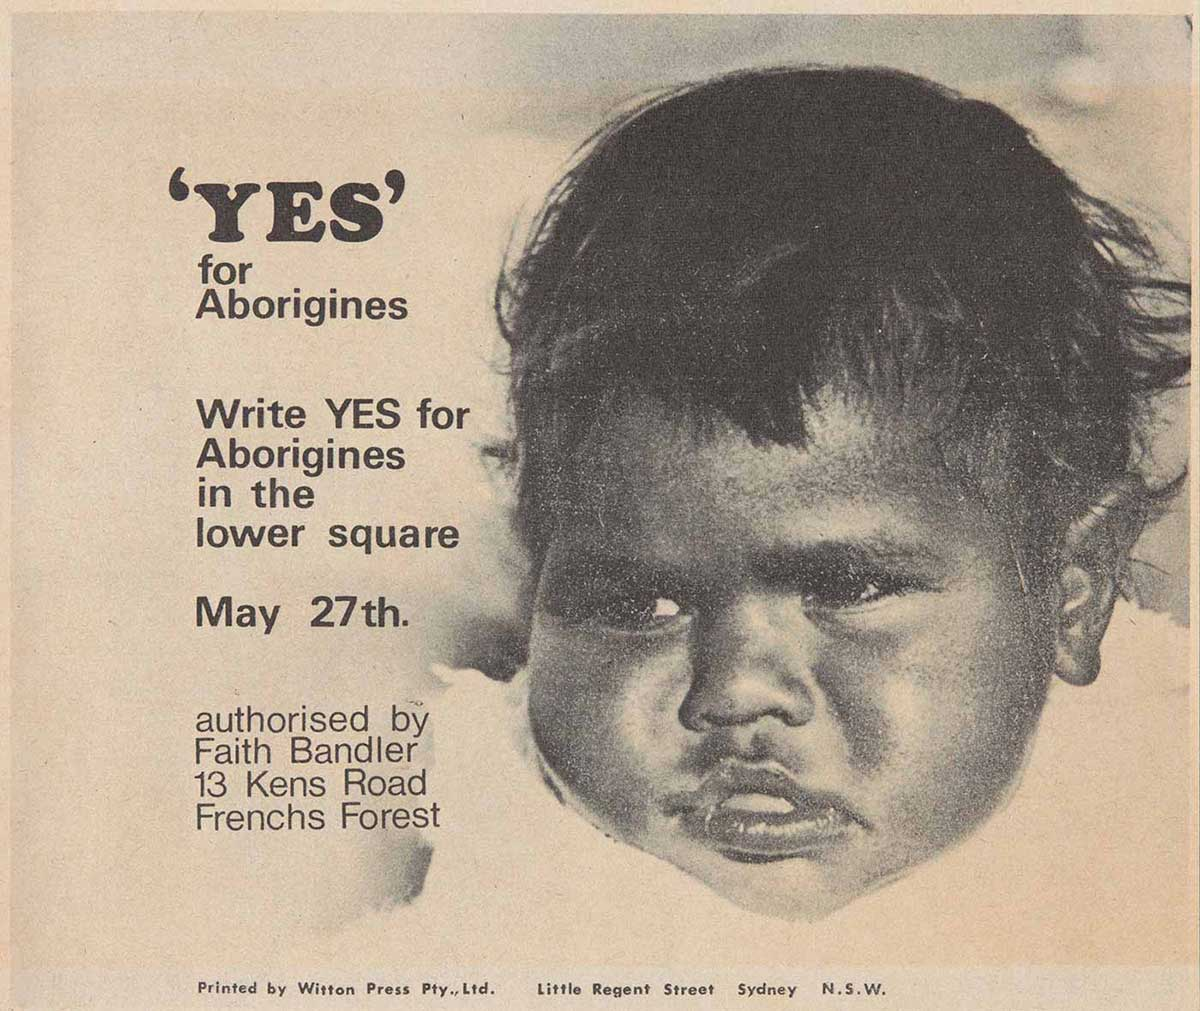 A paper leaflet with a black and white photo of an Aboriginal baby's face. Text to the left reads ''YES' for Aborigine. Write YES for Aborigines in the lower square. May 27th. authorised by Faith Bandler. 13 Kens Road. Frenchs Forest'. - click to view larger image